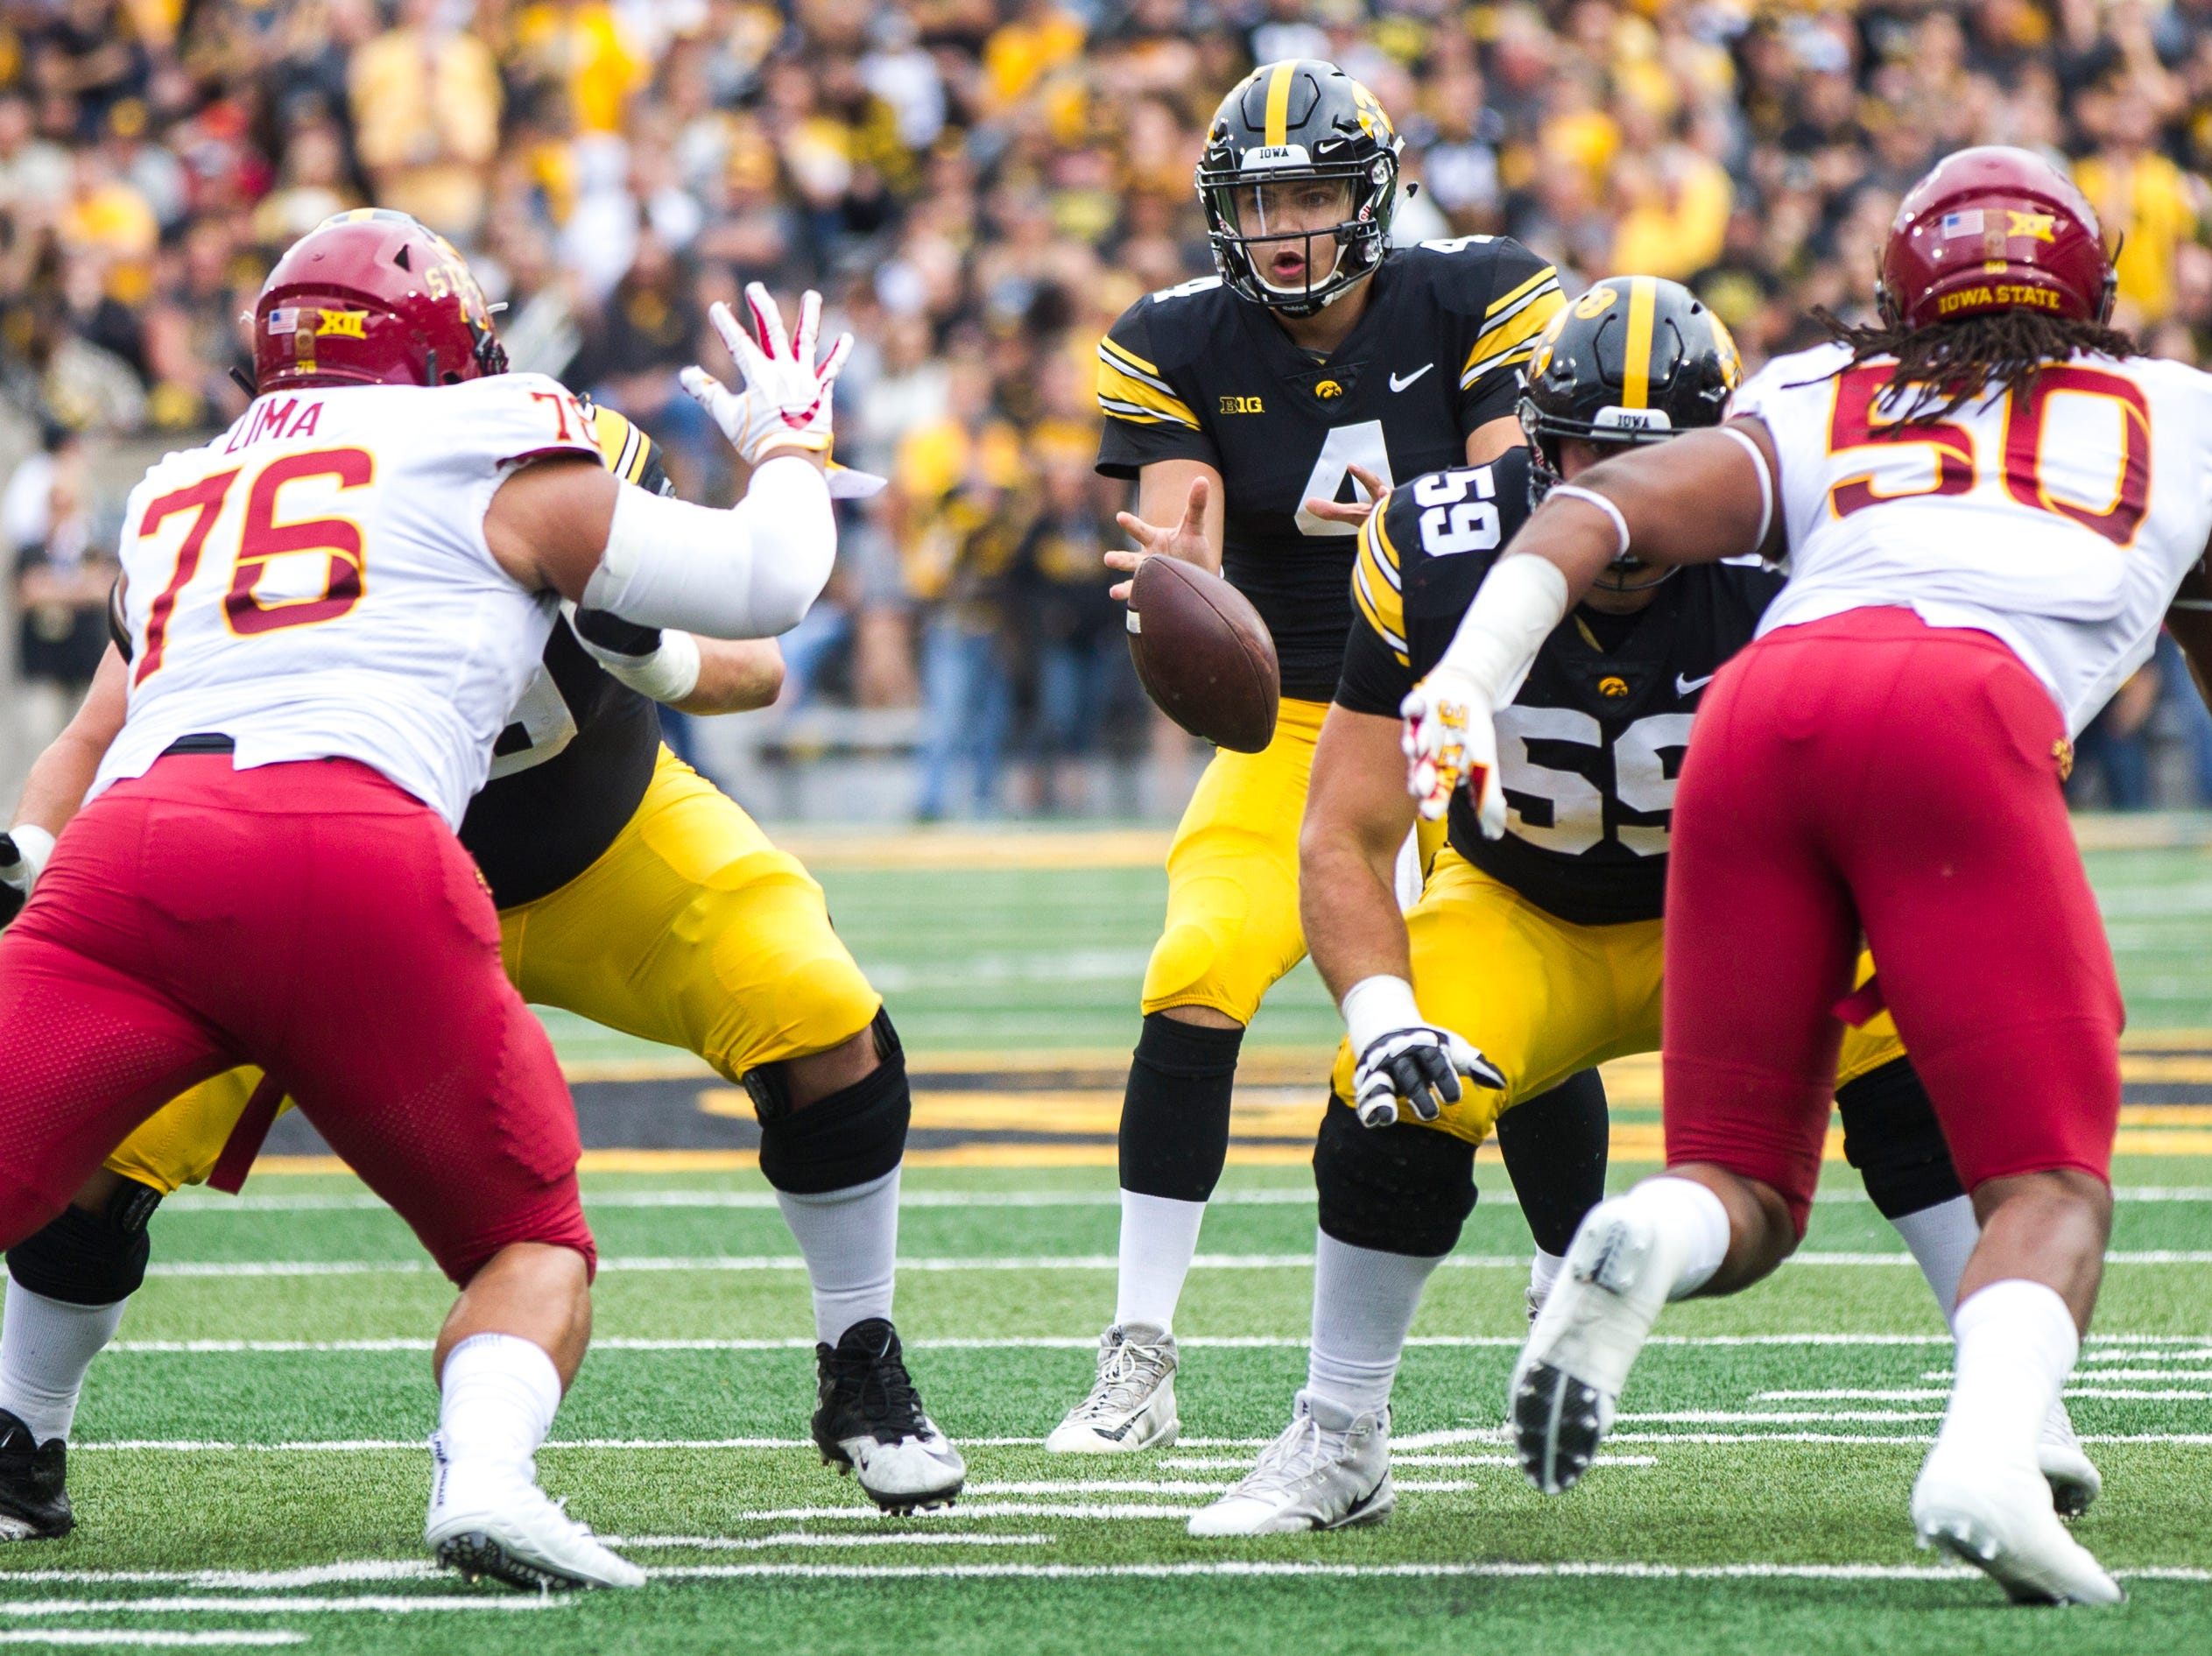 Iowa quarterback Nate Stanley (4) takes a snap from Iowa offensive lineman Keegan Render (69) during the Cy-Hawk NCAA football game on Saturday, Sept. 8, 2018, at Kinnick Stadium in Iowa City.